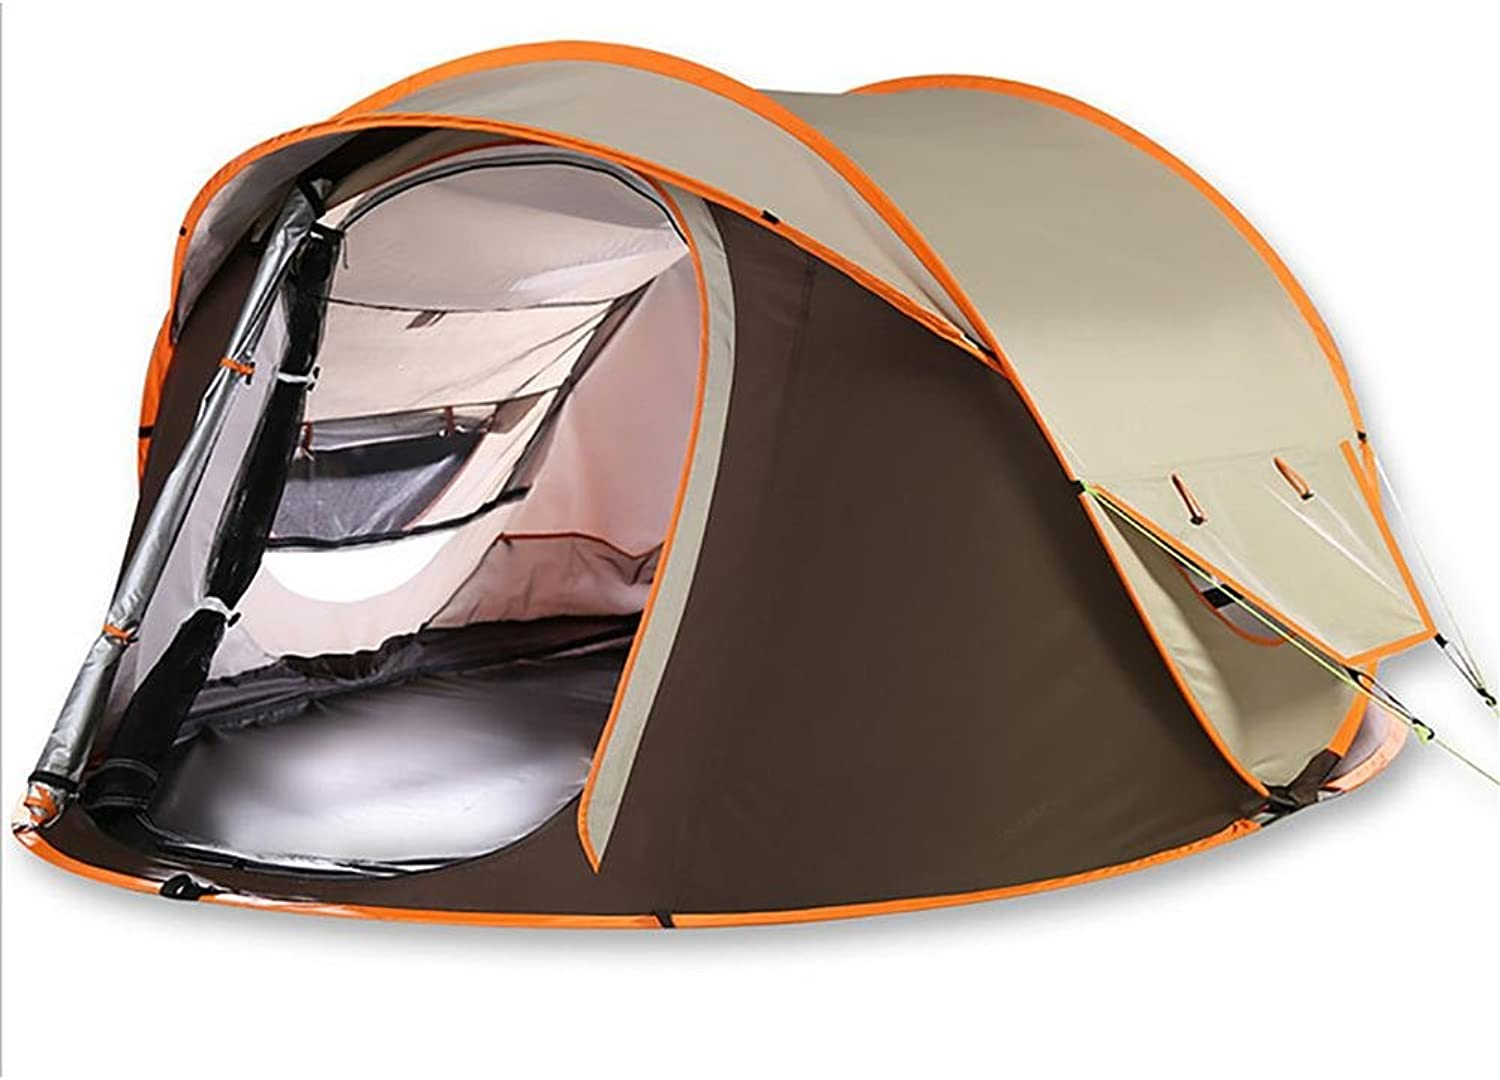 MIAO Outdoor 3-4 3-4 3-4 People Double Rain Prevention Camping Zelte B0748H1J6W  Moderne und stilvolle Mode 756819